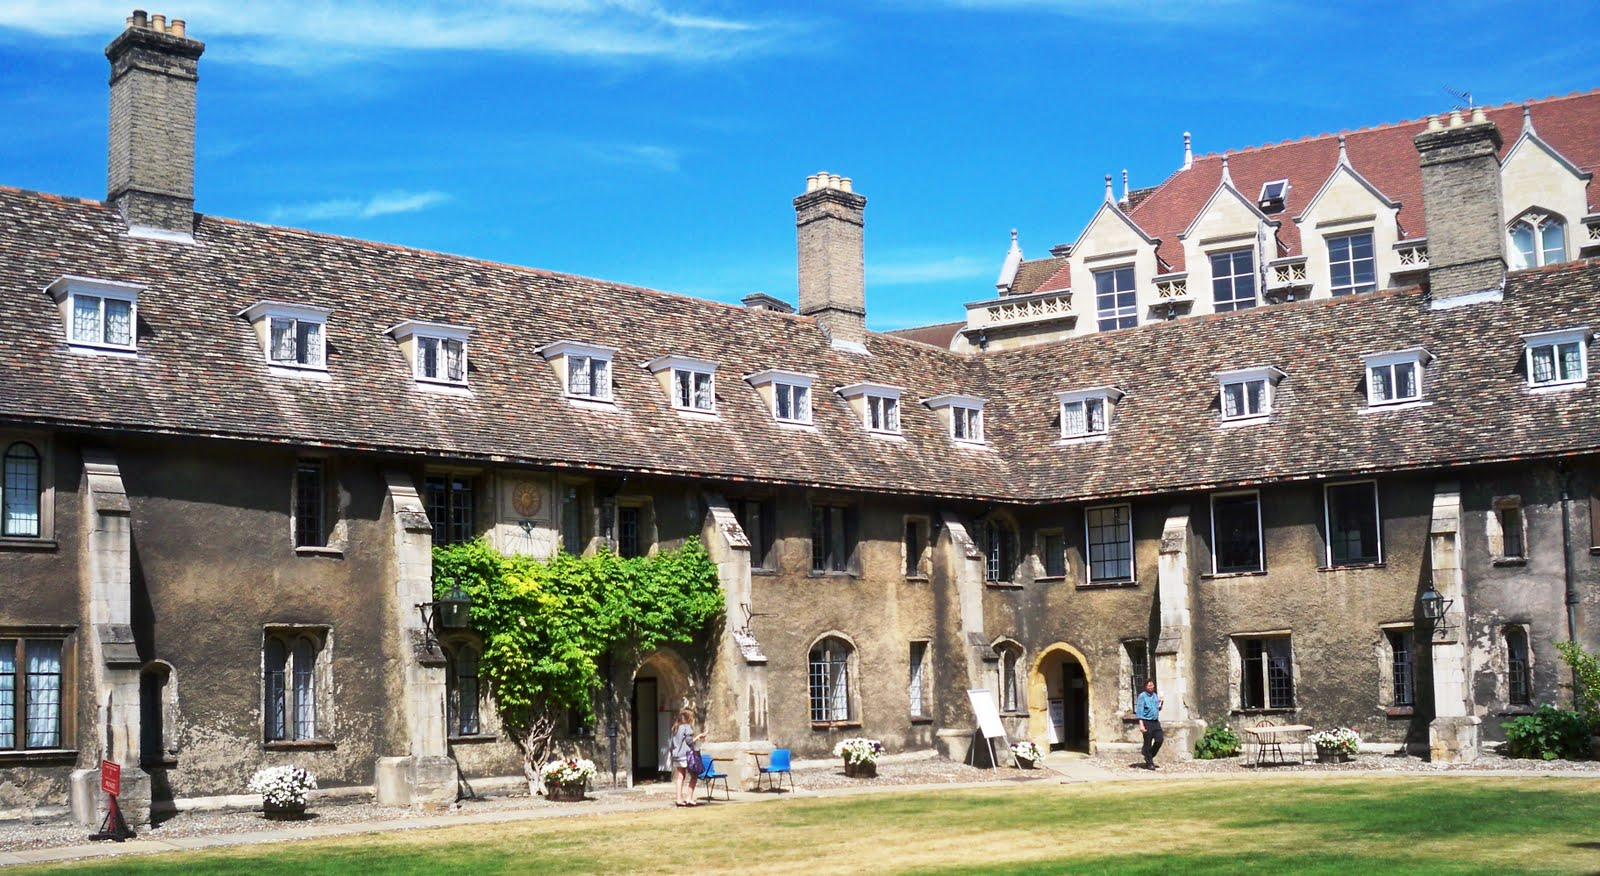 corpus christi college philosophy essay competition Established in 2006, the lloyd davies philosophy prize is an essay competition open to students in year 12 or the lower 6th the first prize is £250, and there may also be a second prize of £150.